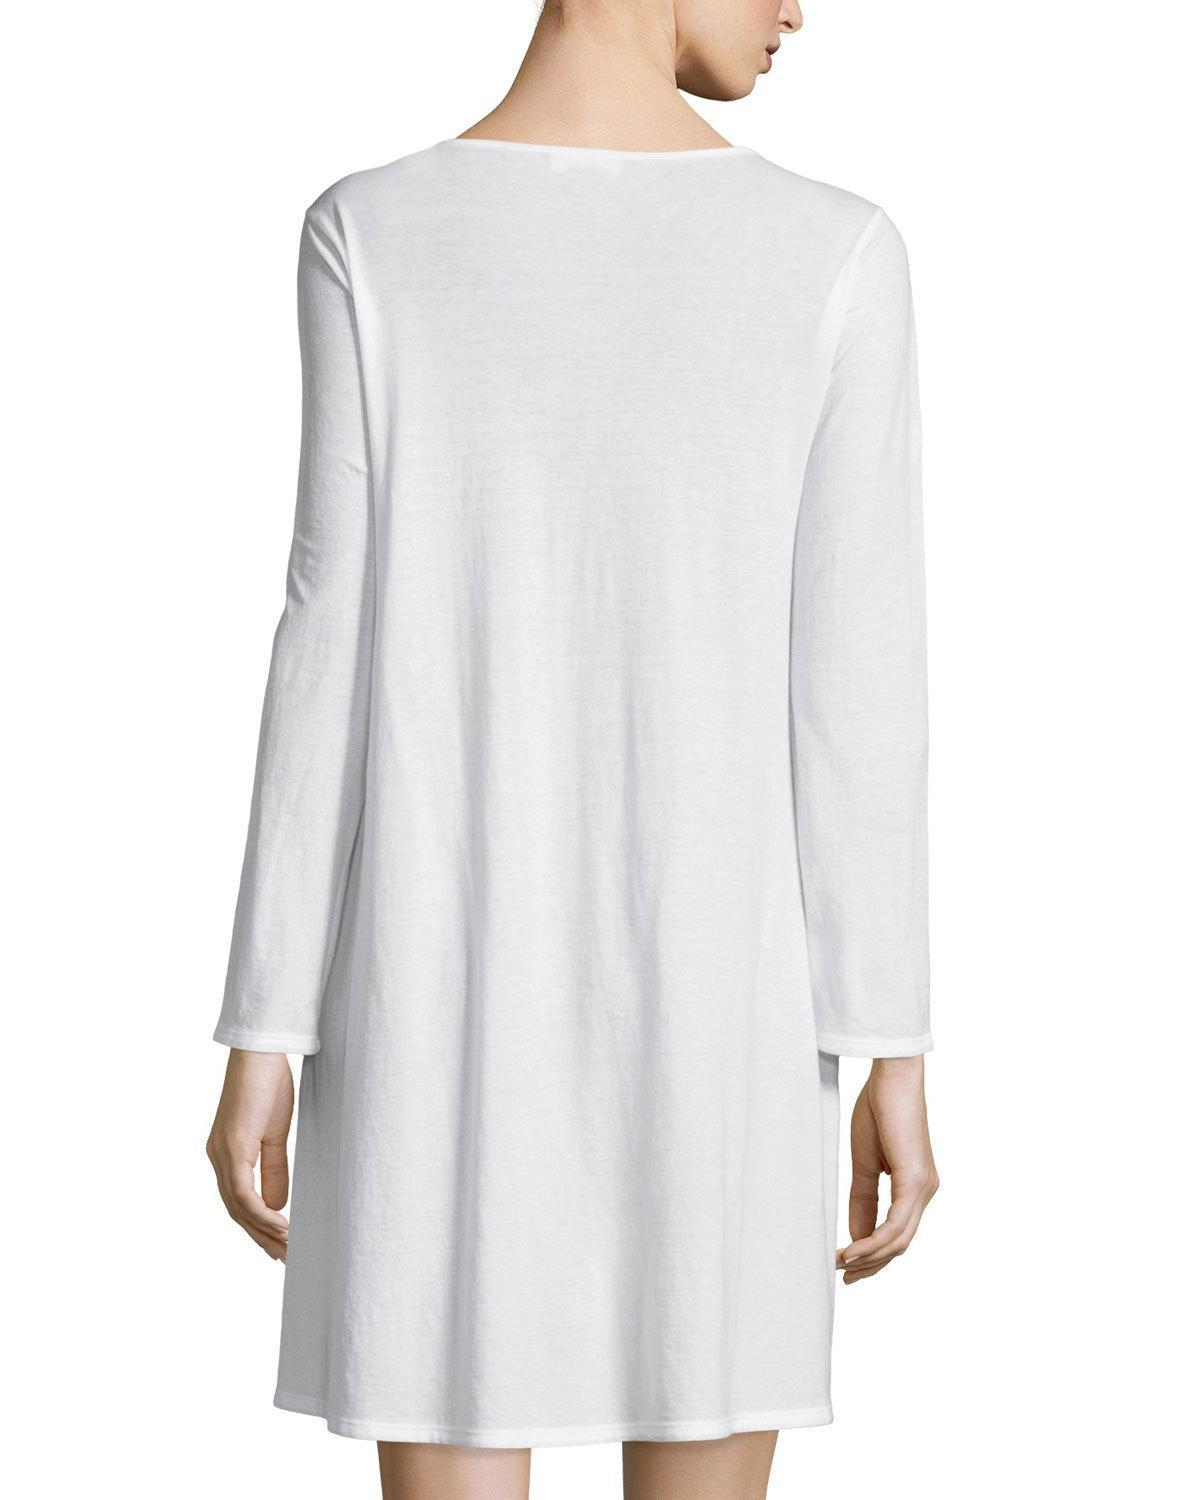 Lyst - Natori Tranquility Lace-inset Sleepshirt in White a65726caf